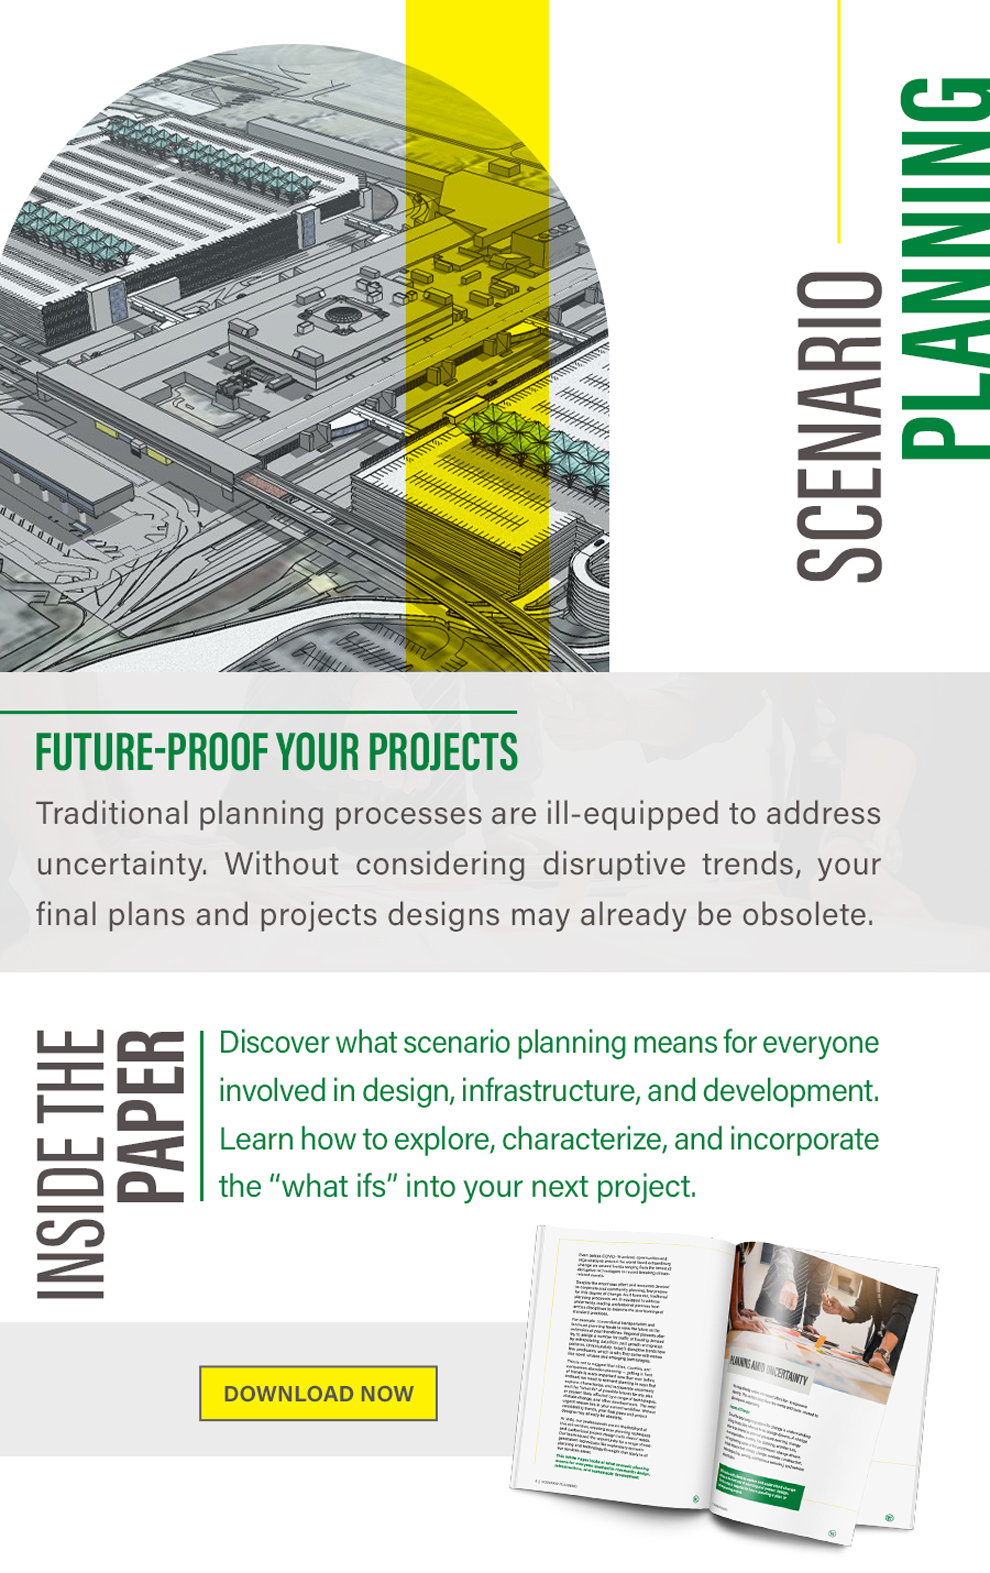 Scenario Planning: Future-Proof Your Projects. Download Now.